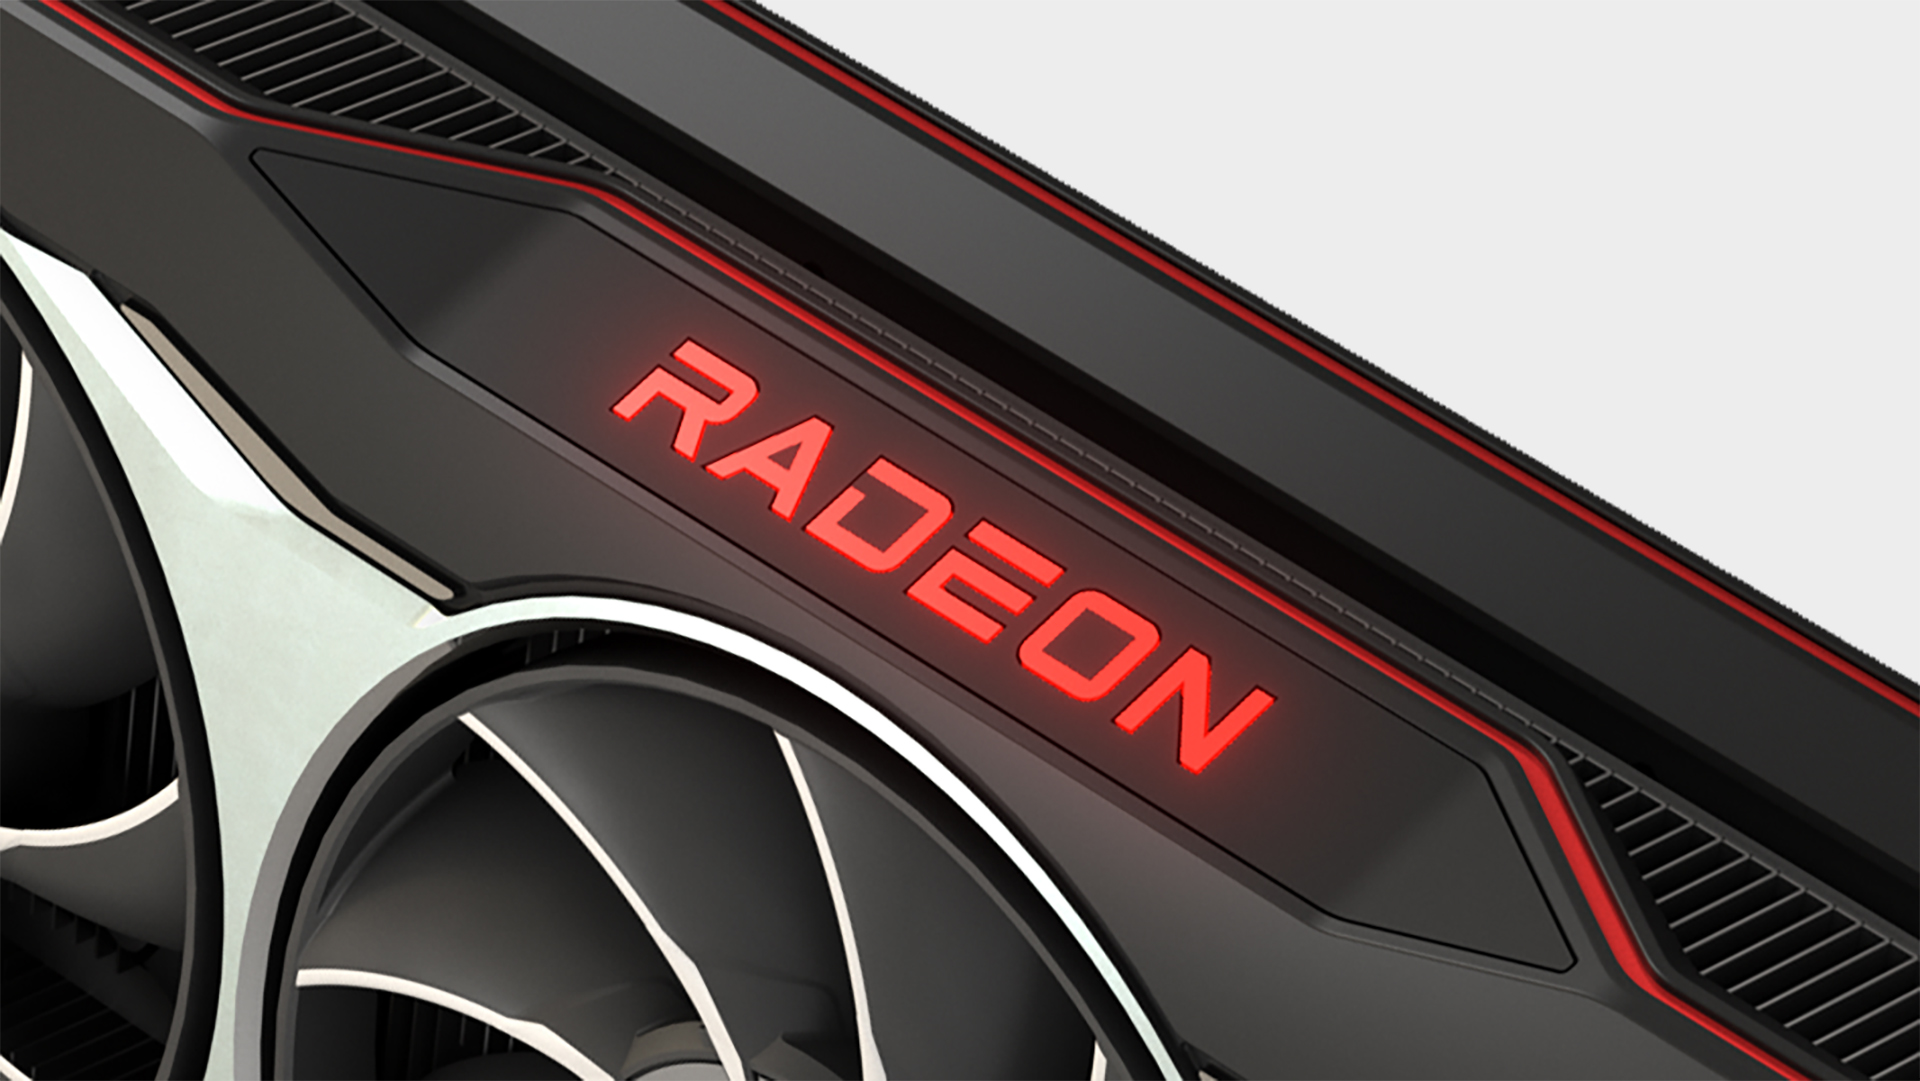 AMD RX 6700 graphics card release date, specs, performance, and price